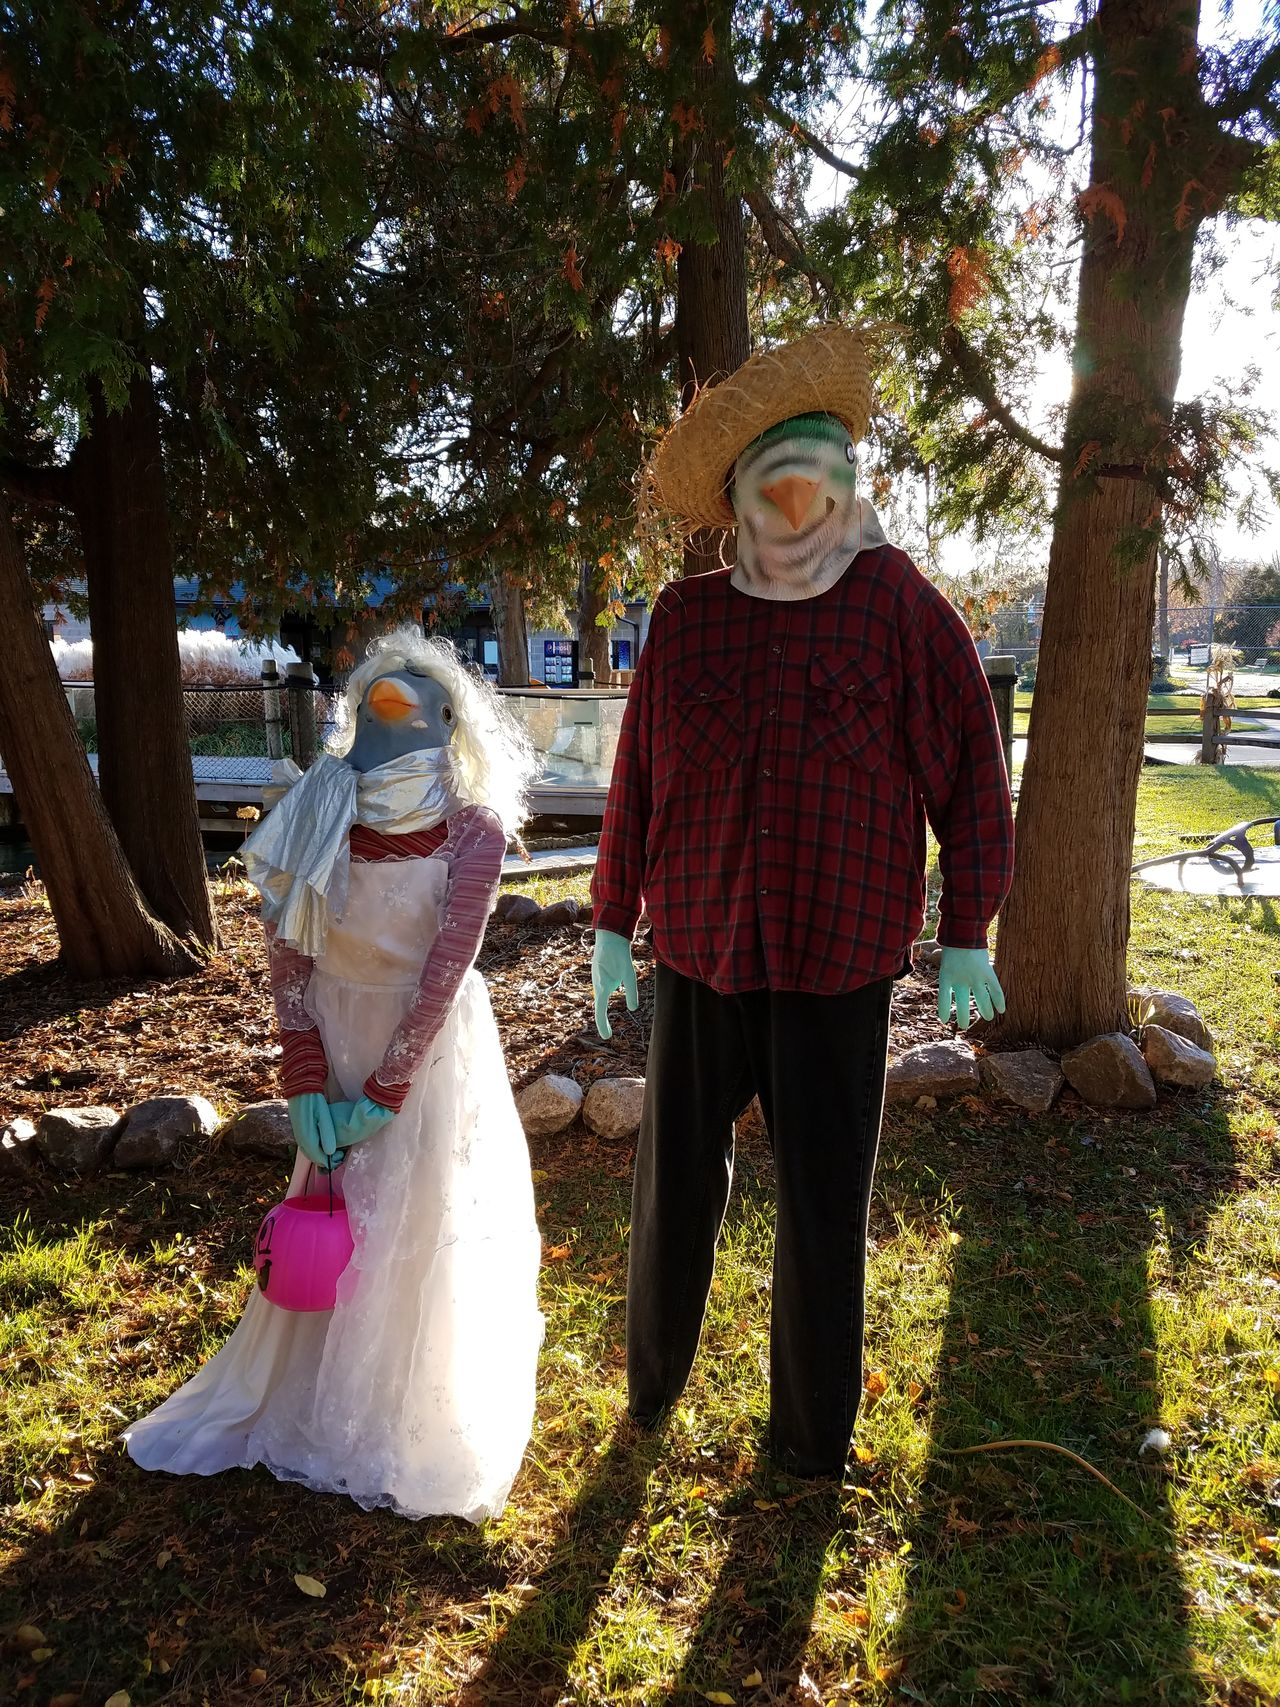 Halloween couple Tree Hat Standing Outdoors Togetherness Costume Halloween Halloween